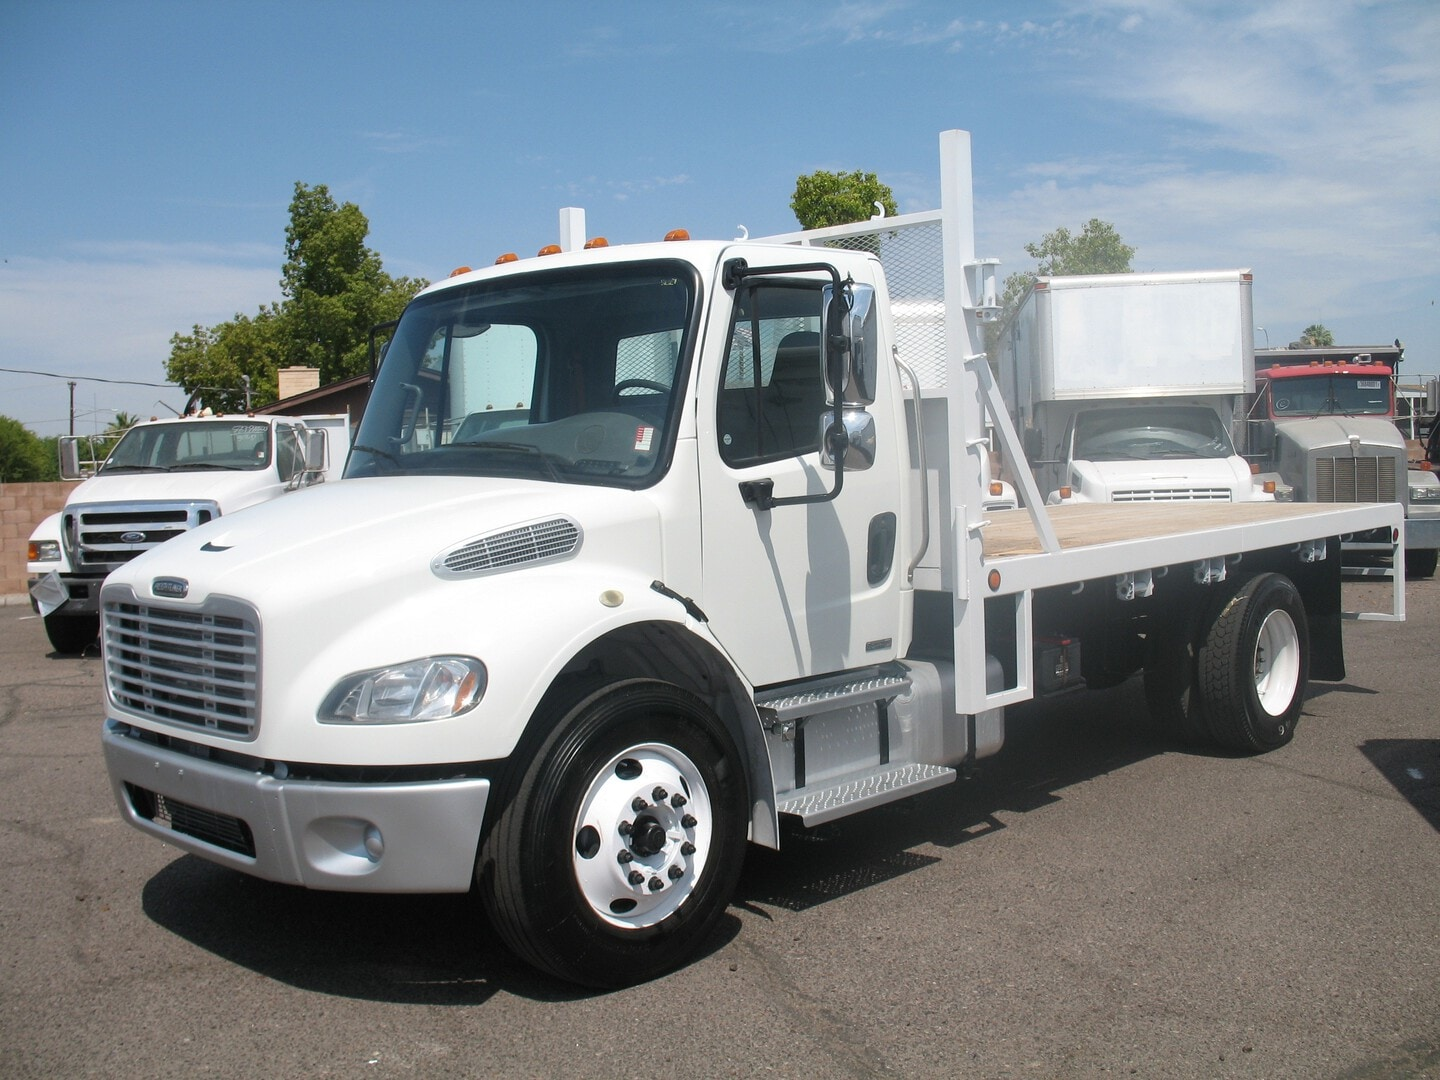 Used, 2007, Freightliner, M2 Business Class 106, Flatbed Trucks